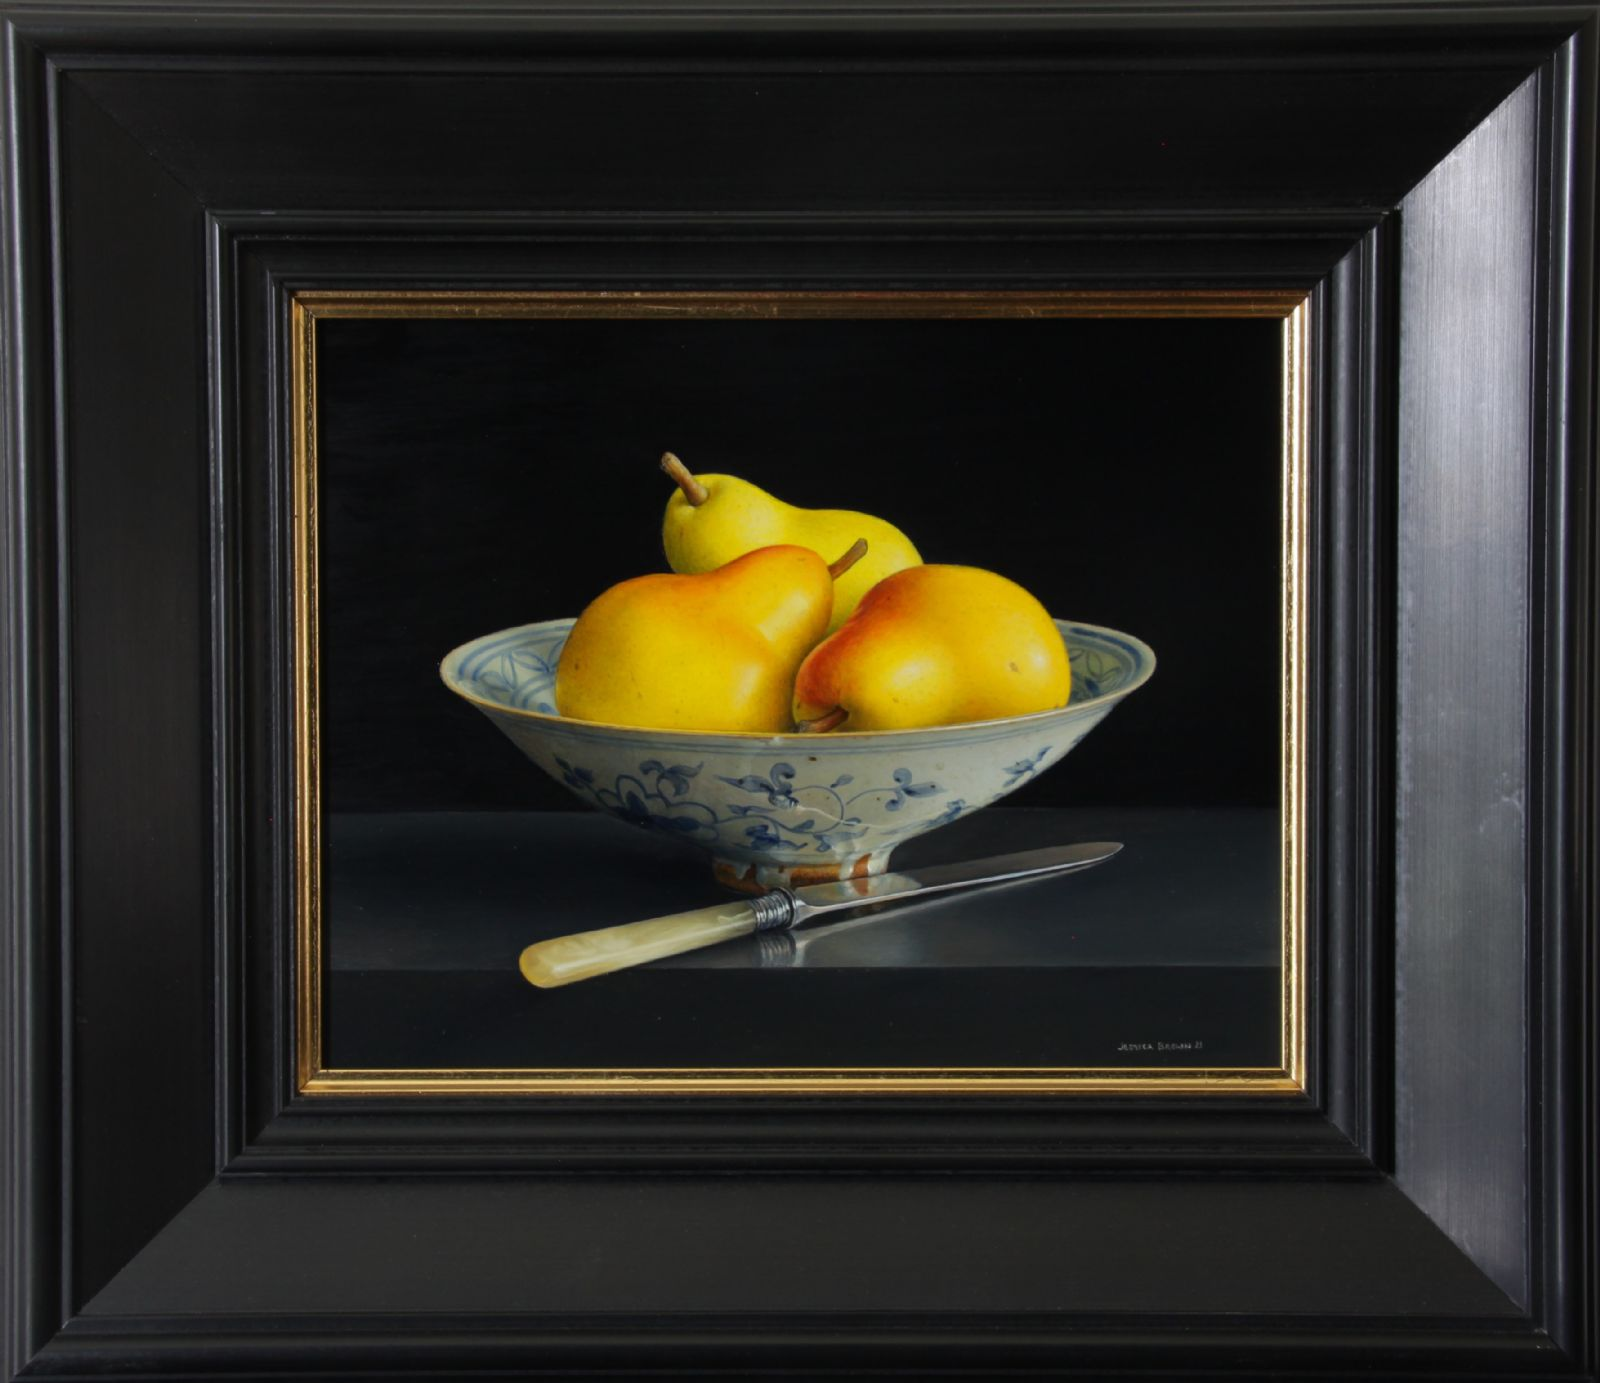 Still Life with Pears in a Chinese Bowl and Fruit Knife by Jessica Brown